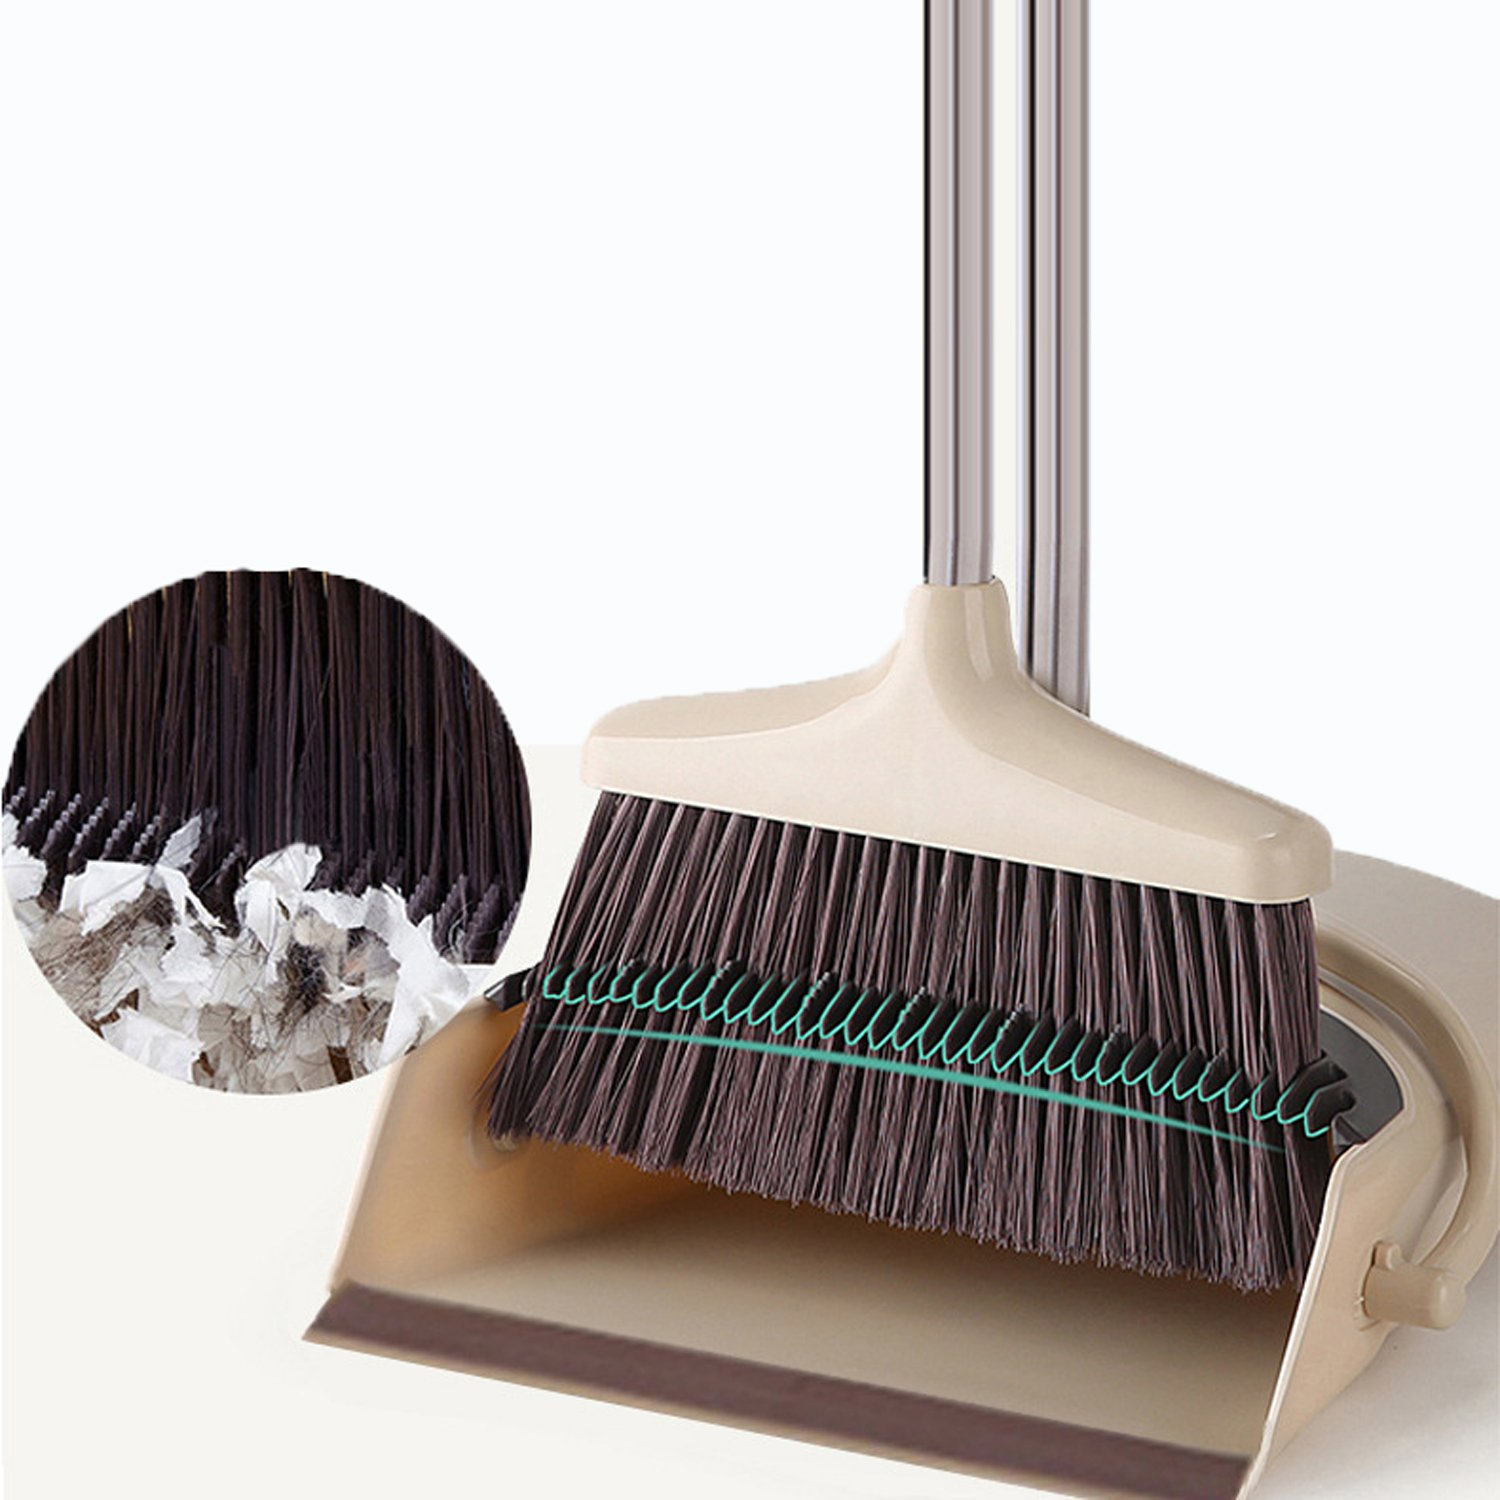 FreedomDesign Rotatable Broom and Dustpan Foldable Set, Dustpan Cleans Broom Combo with Long Handle for Home Kitchen Room Office Lobby Floor Use Upright Stand up Dustpan Broom Set